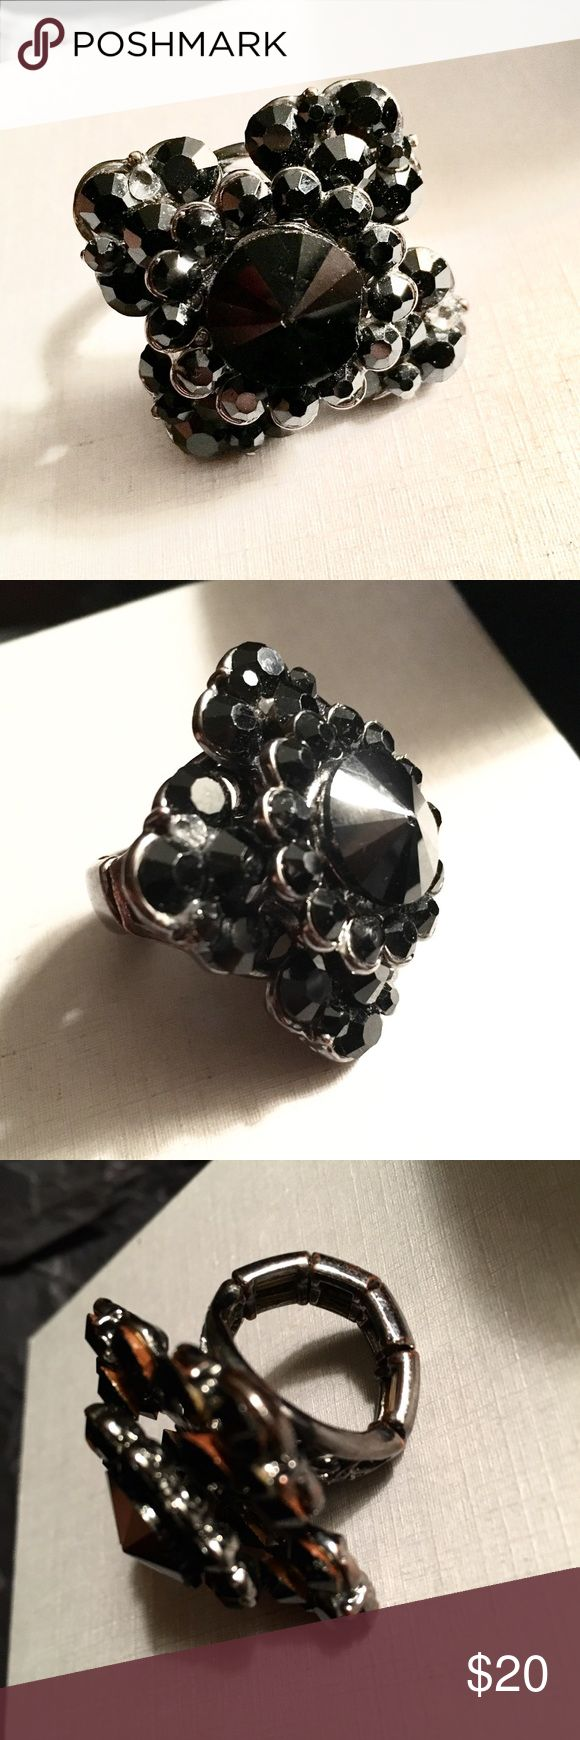 RING- adjustable black rhinestone statement ring Badass black rhinestone ring. It's band has beaded elastic to fit any size finger. It's so fun and will earn you tons of compliments with every wear! Jewelry Rings